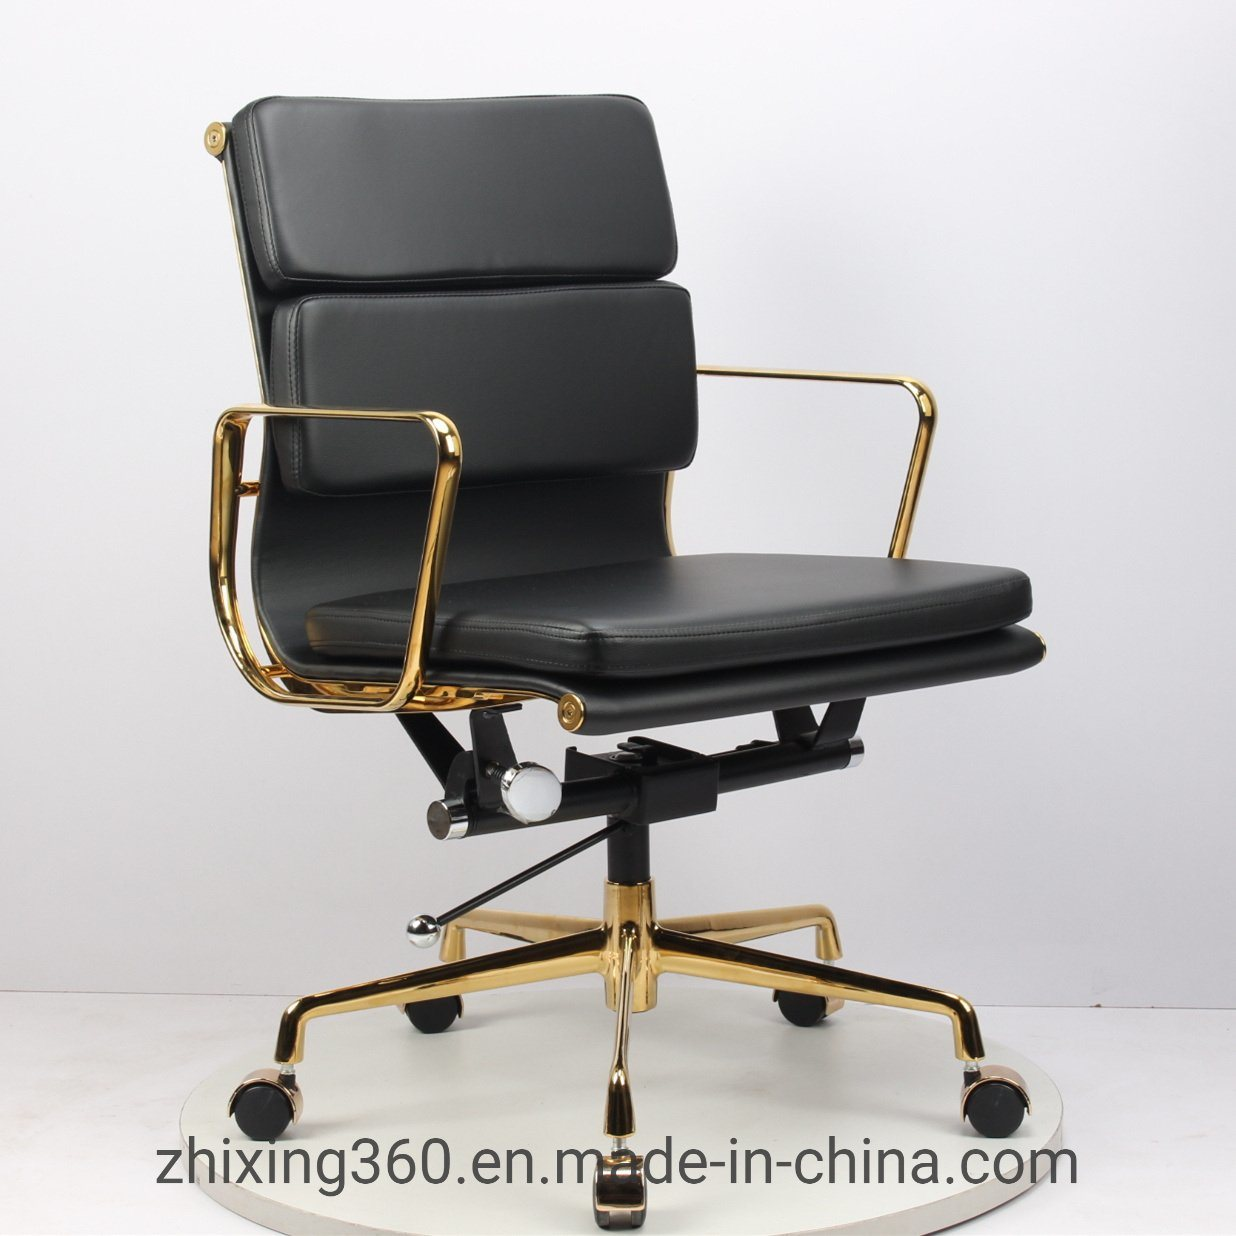 Eames Desk Chair Hot Item Eames Office Chair Designer Chair Engraved Classic Gold Plated Office Swivel Chair Leather Boutique